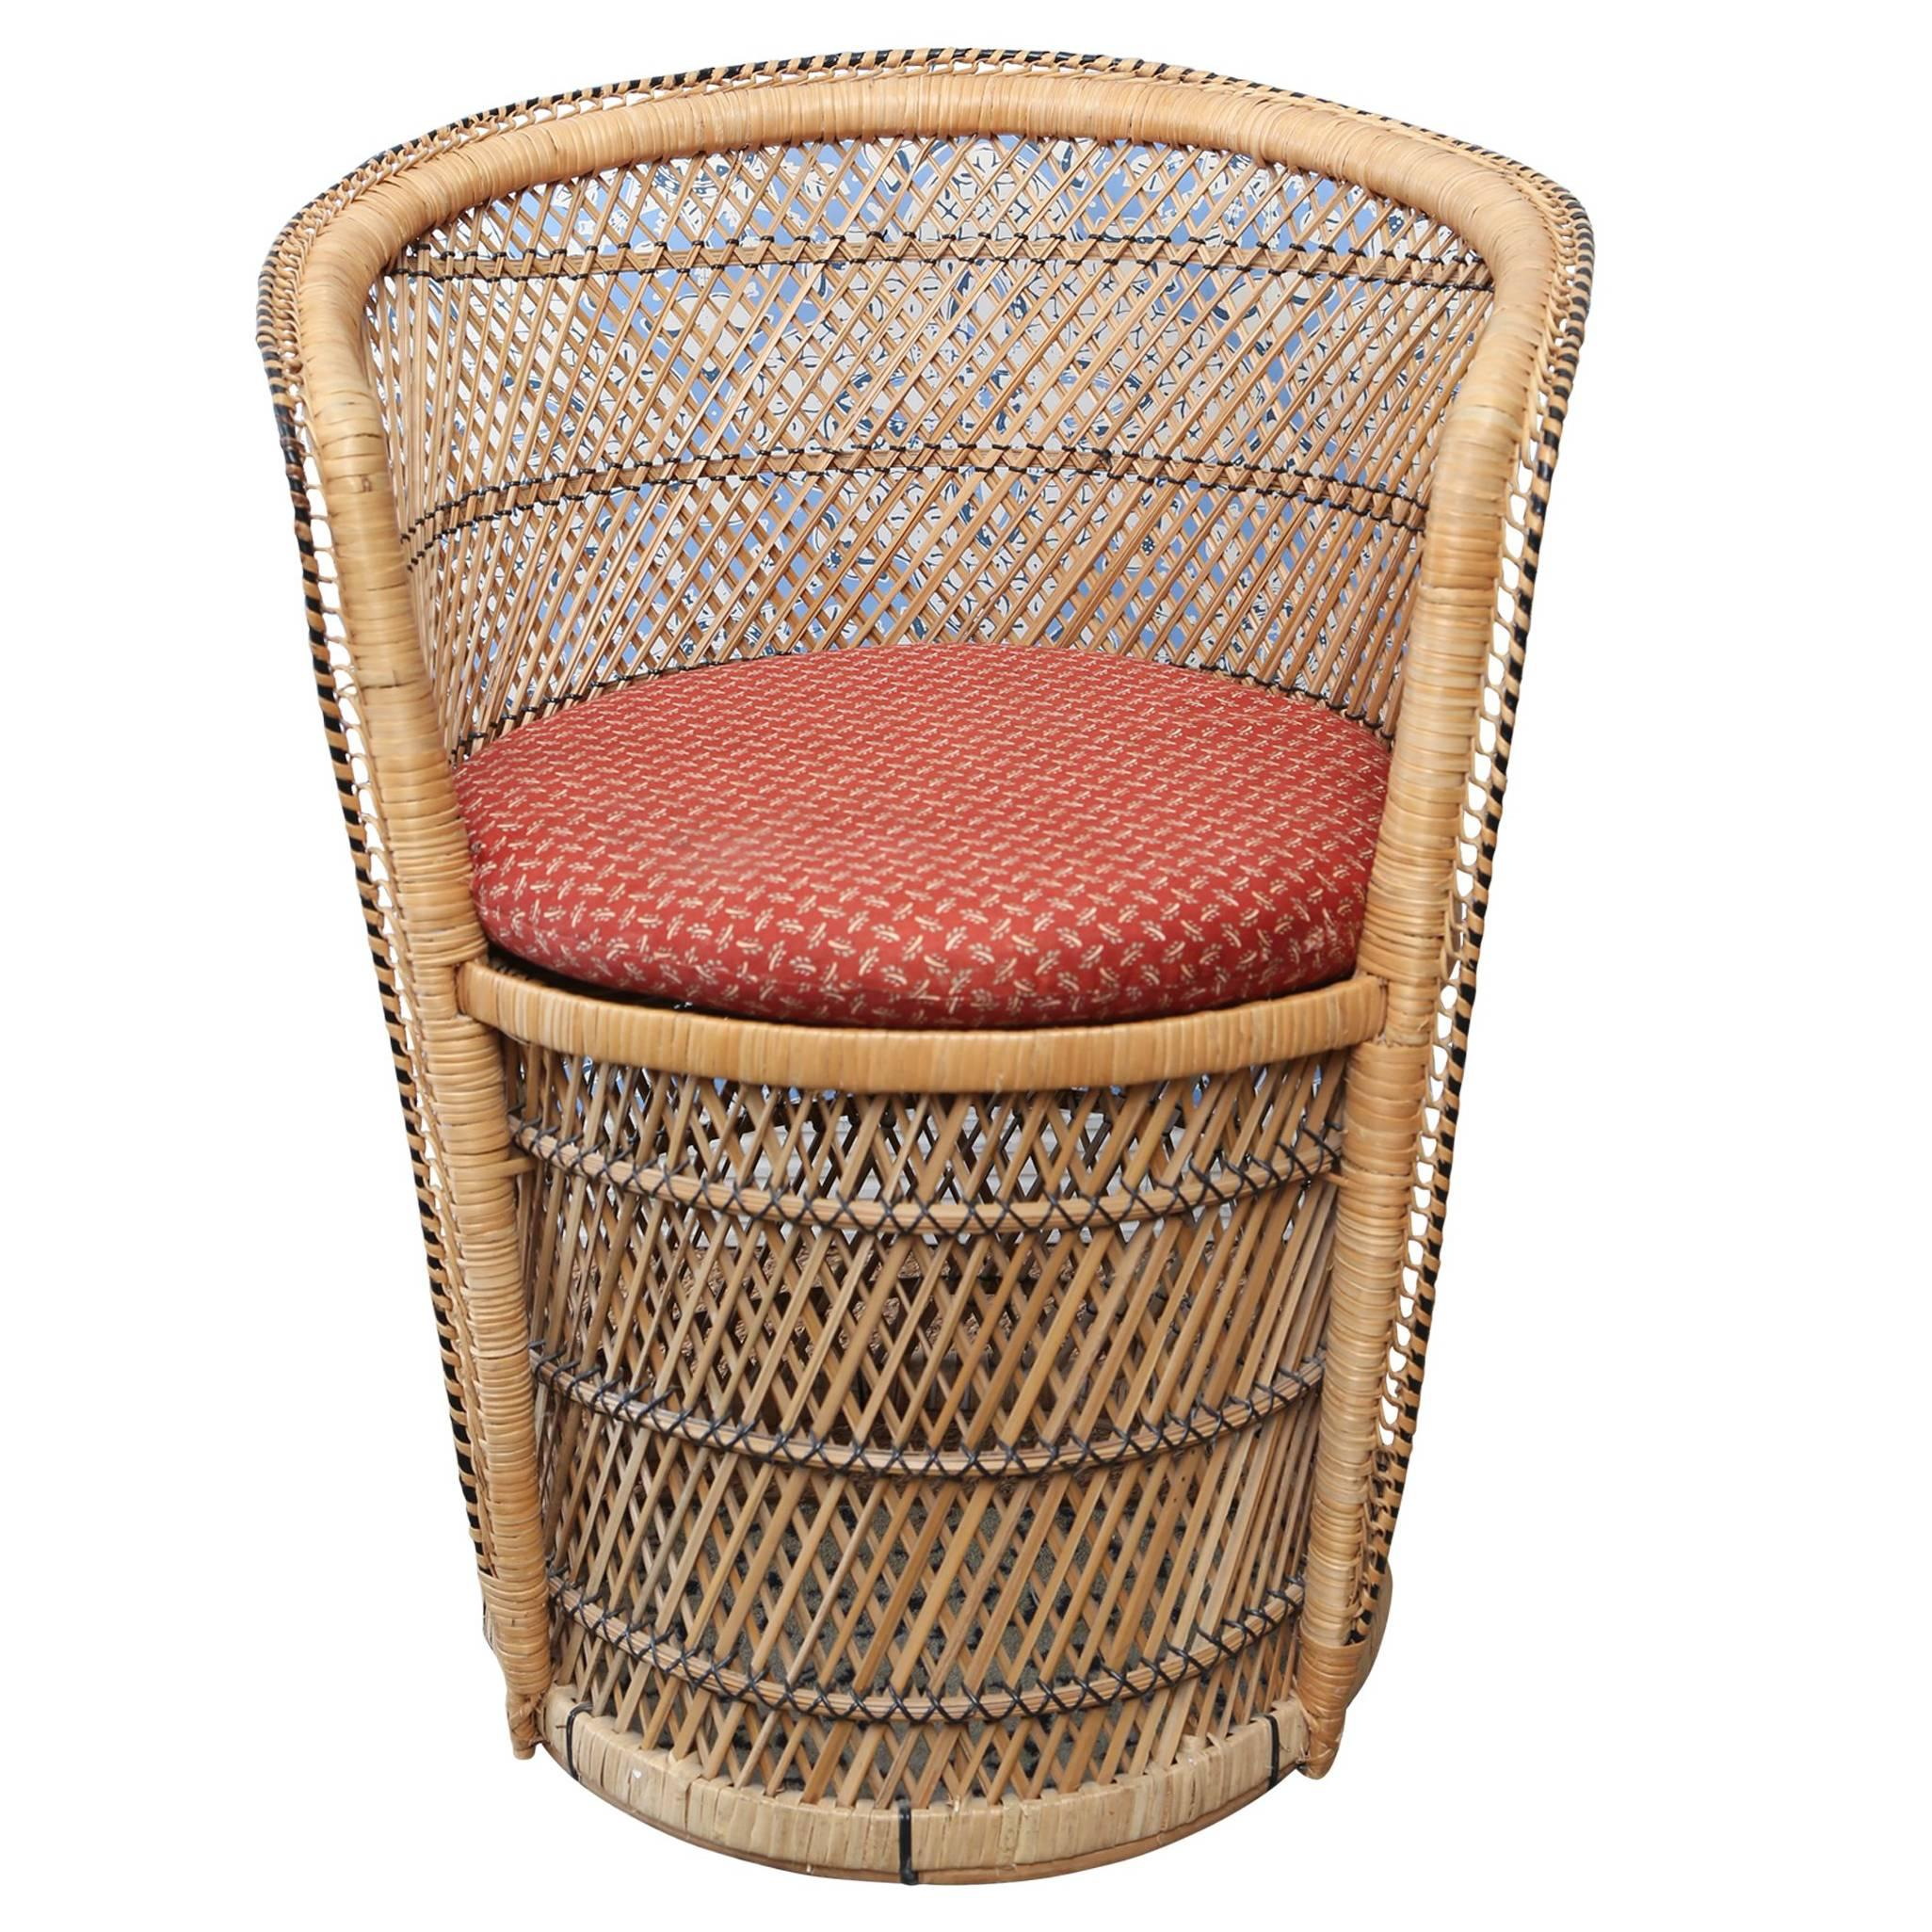 Iconic Emmanuelle Chair Midcentury  Rattan Peacock Chair For Sale at     Vintage Woven Rattan Peacock Chair